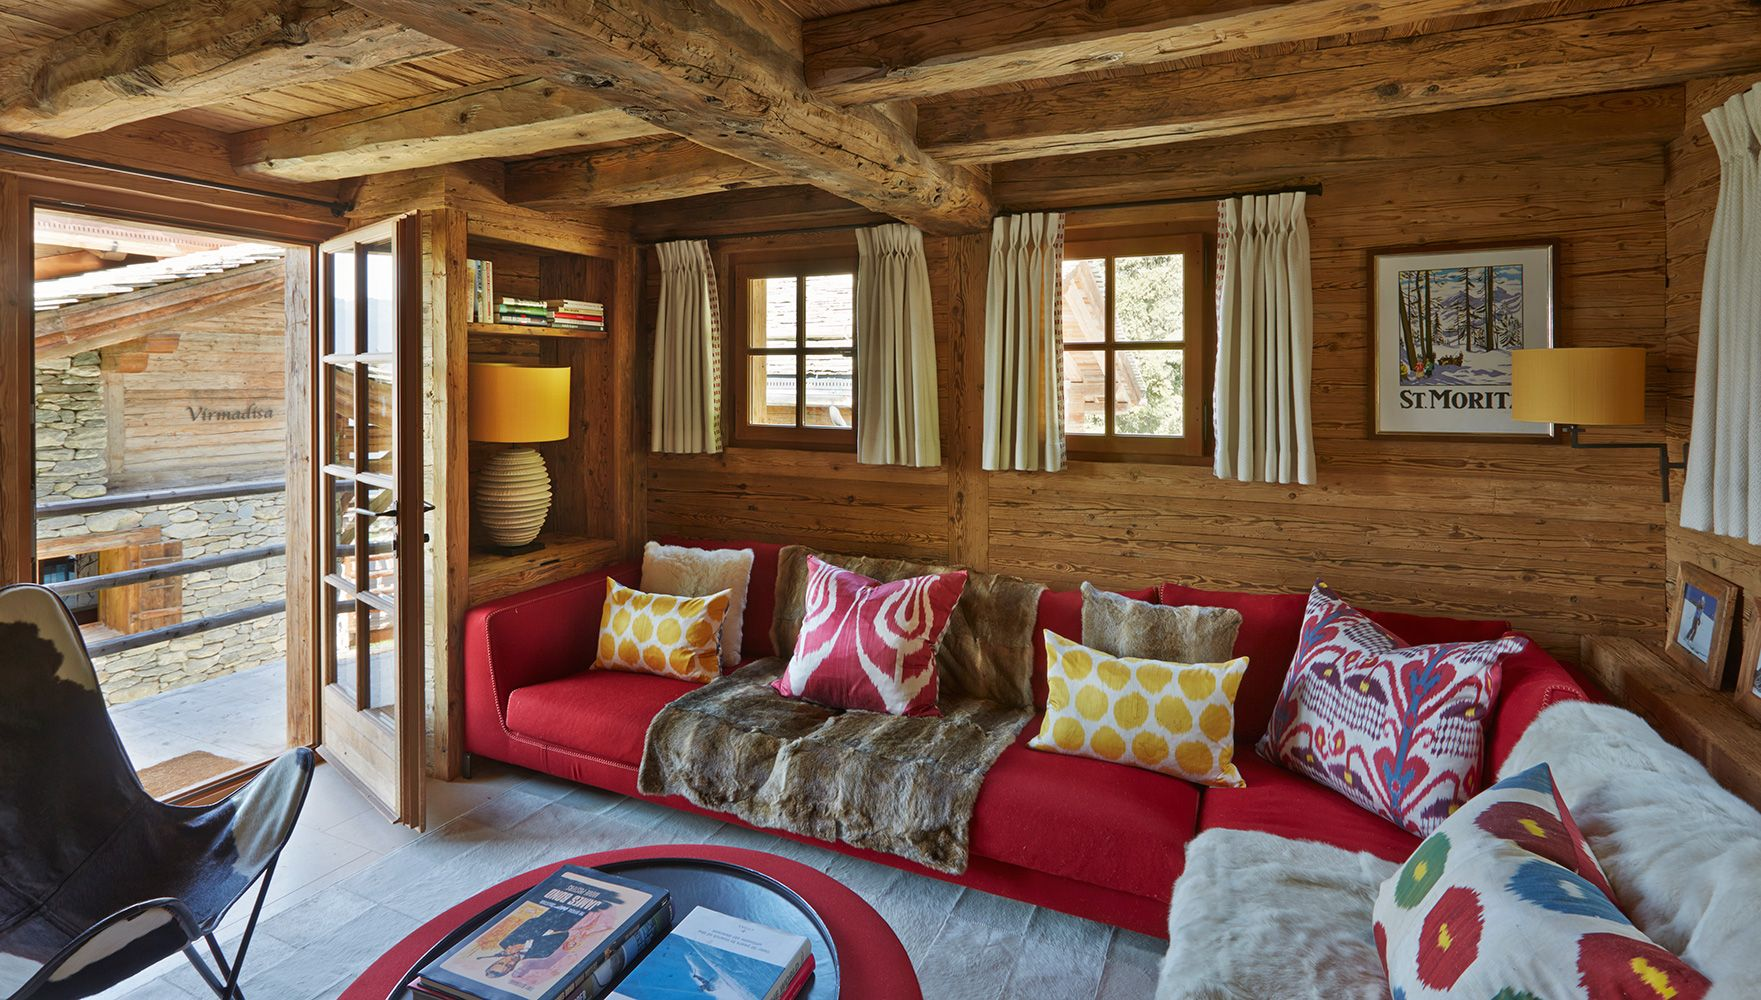 Interior design ∙ chalets ∙ swiss chalet todhunter earletodhunter earle